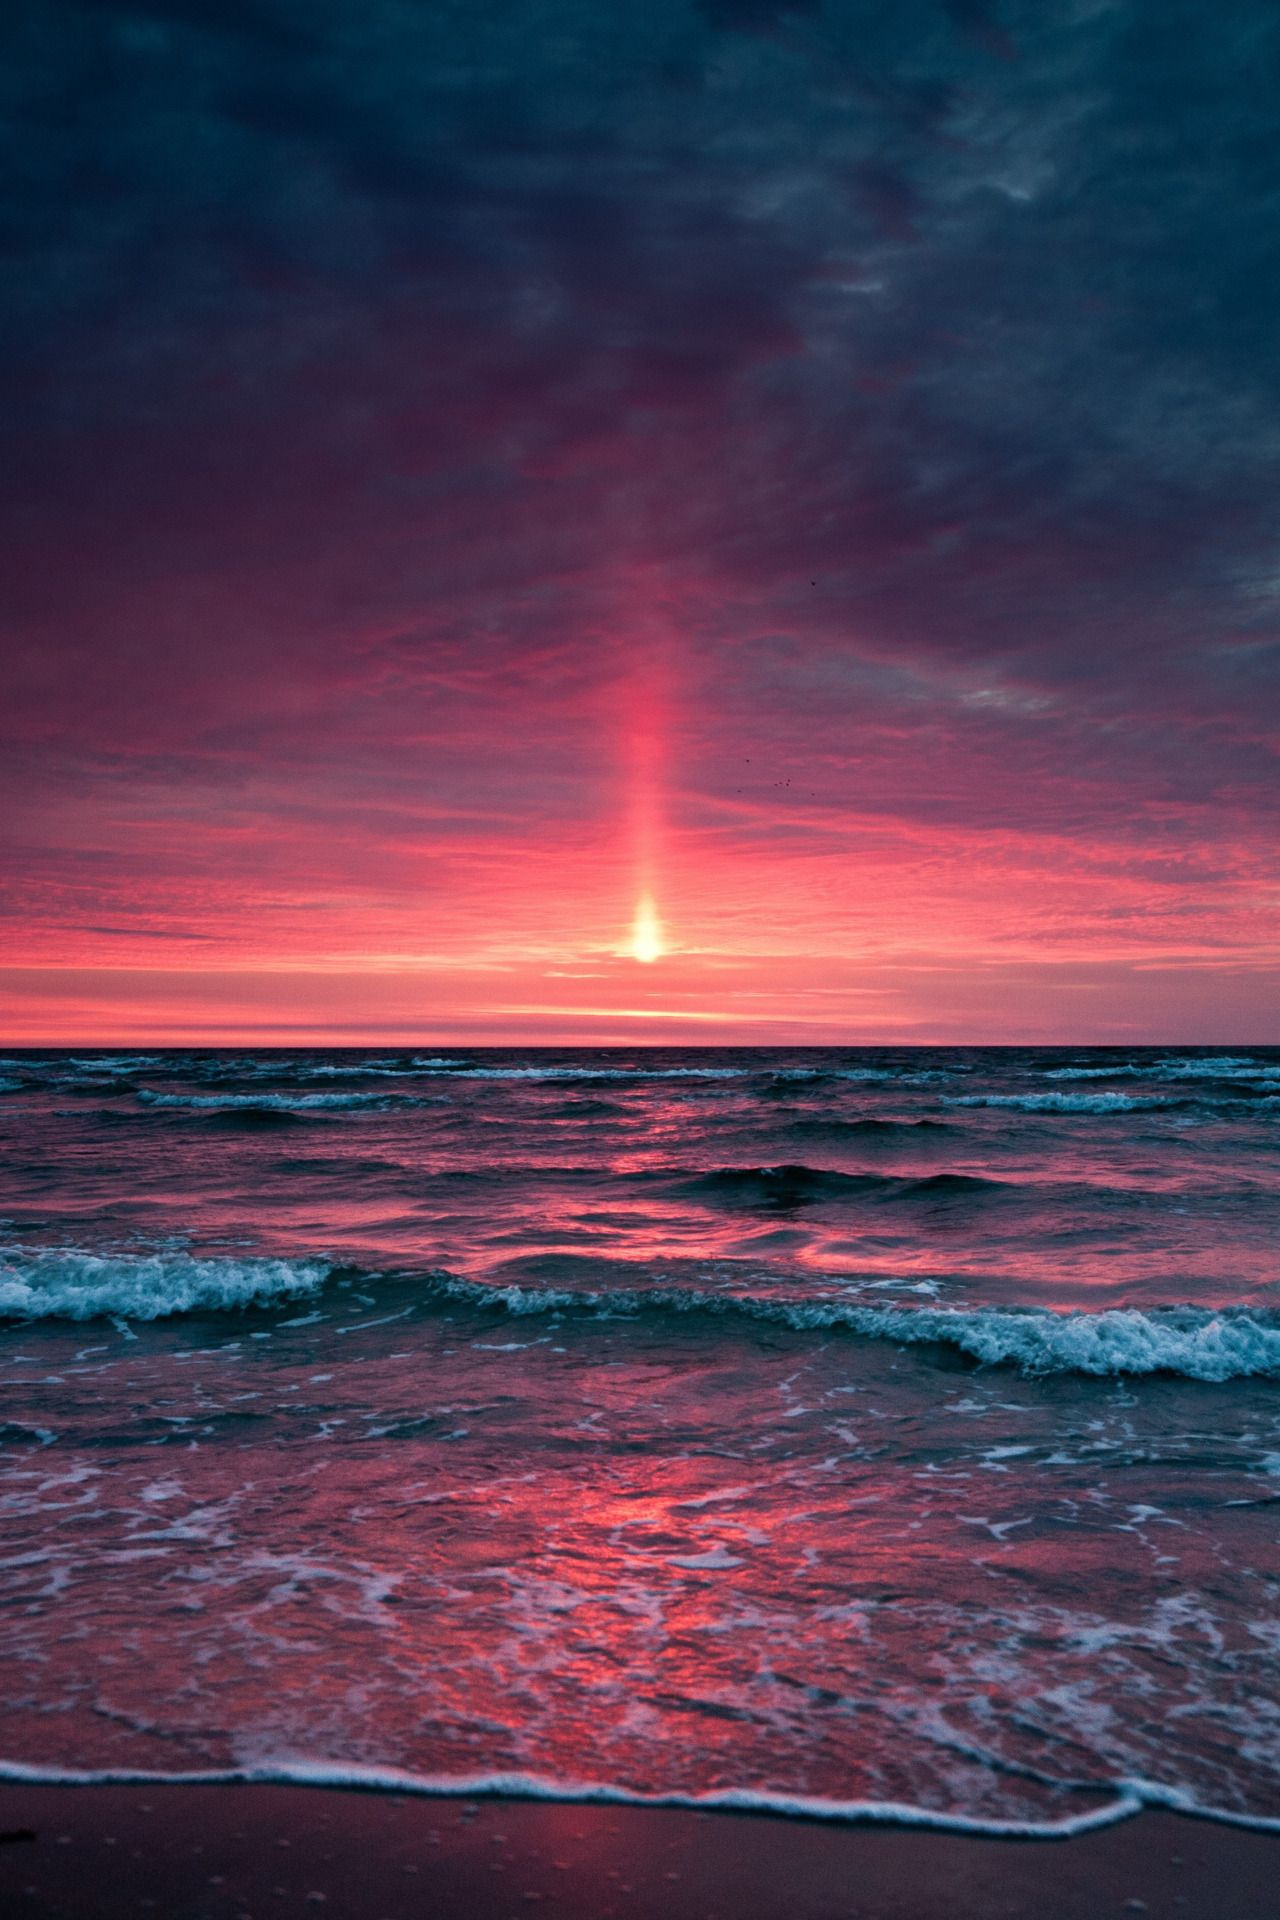 Ocean sunset photo